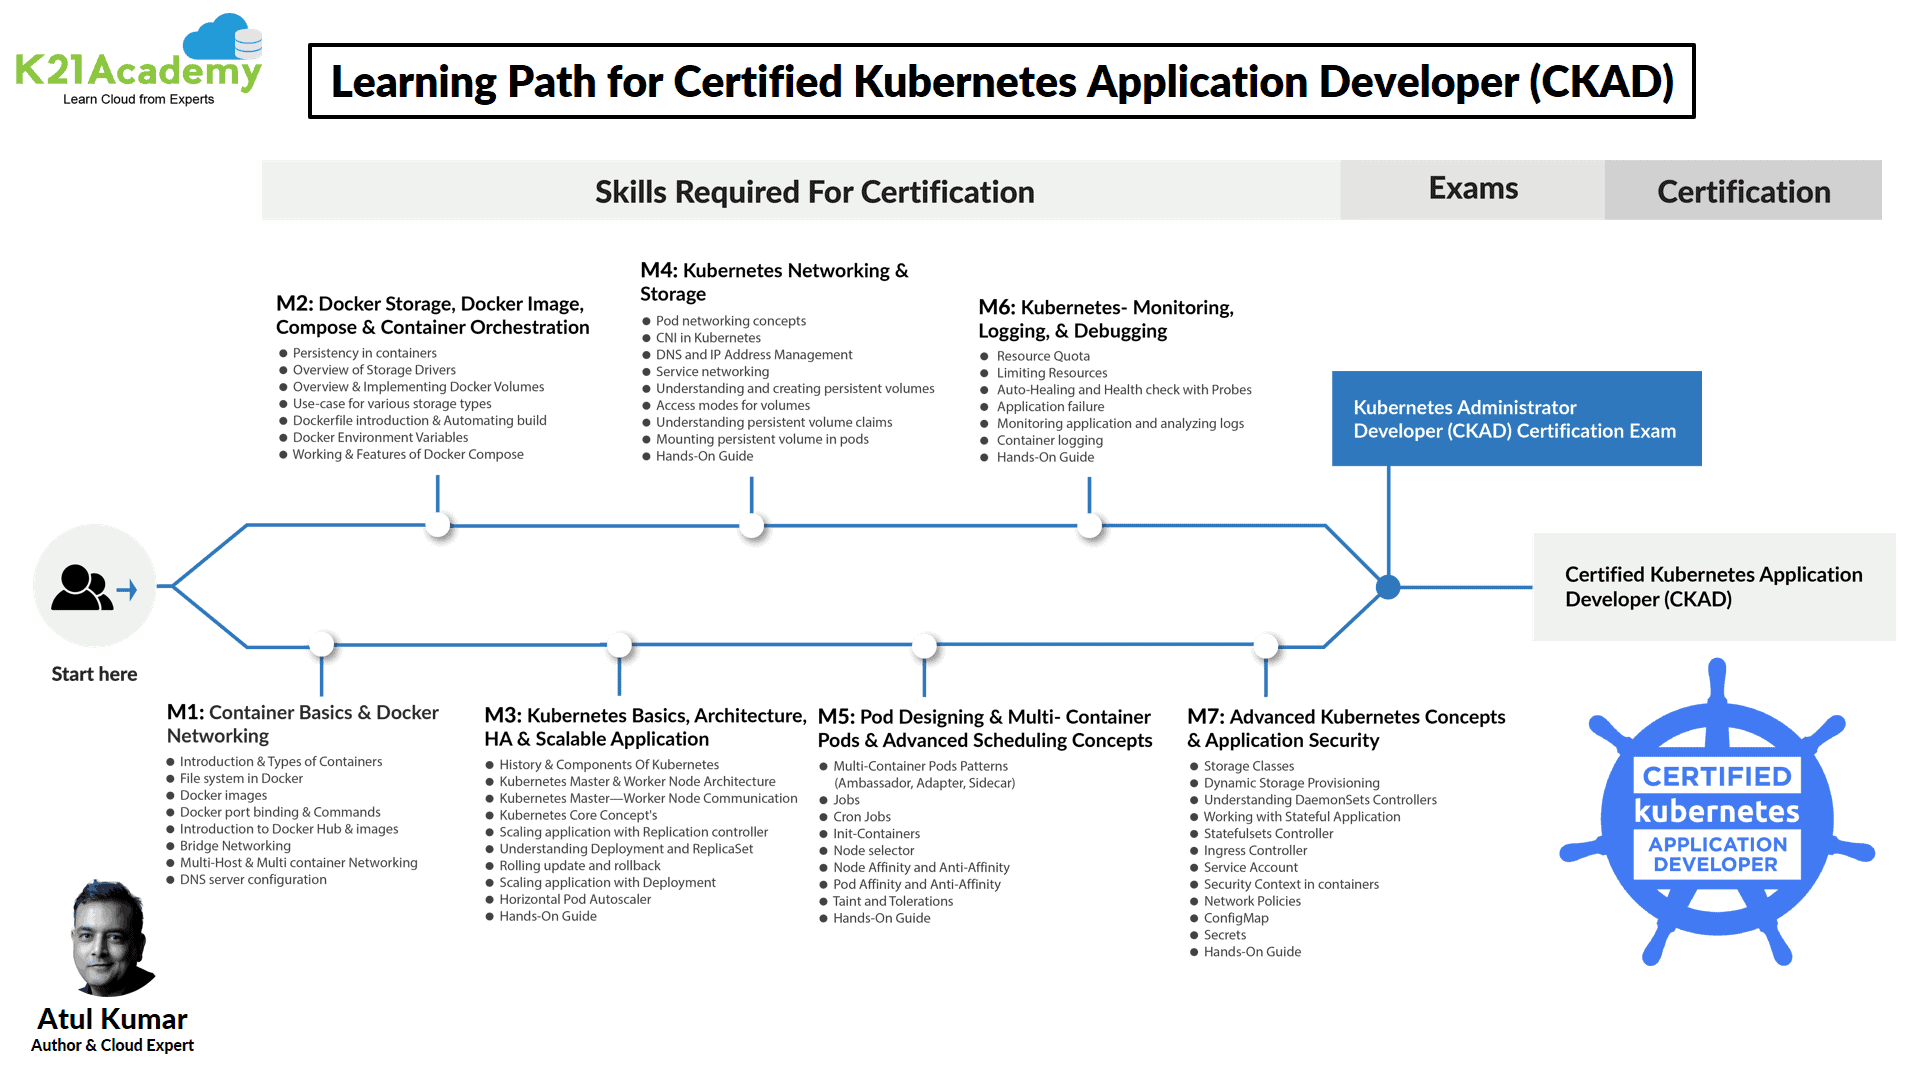 CKAD Learning Path